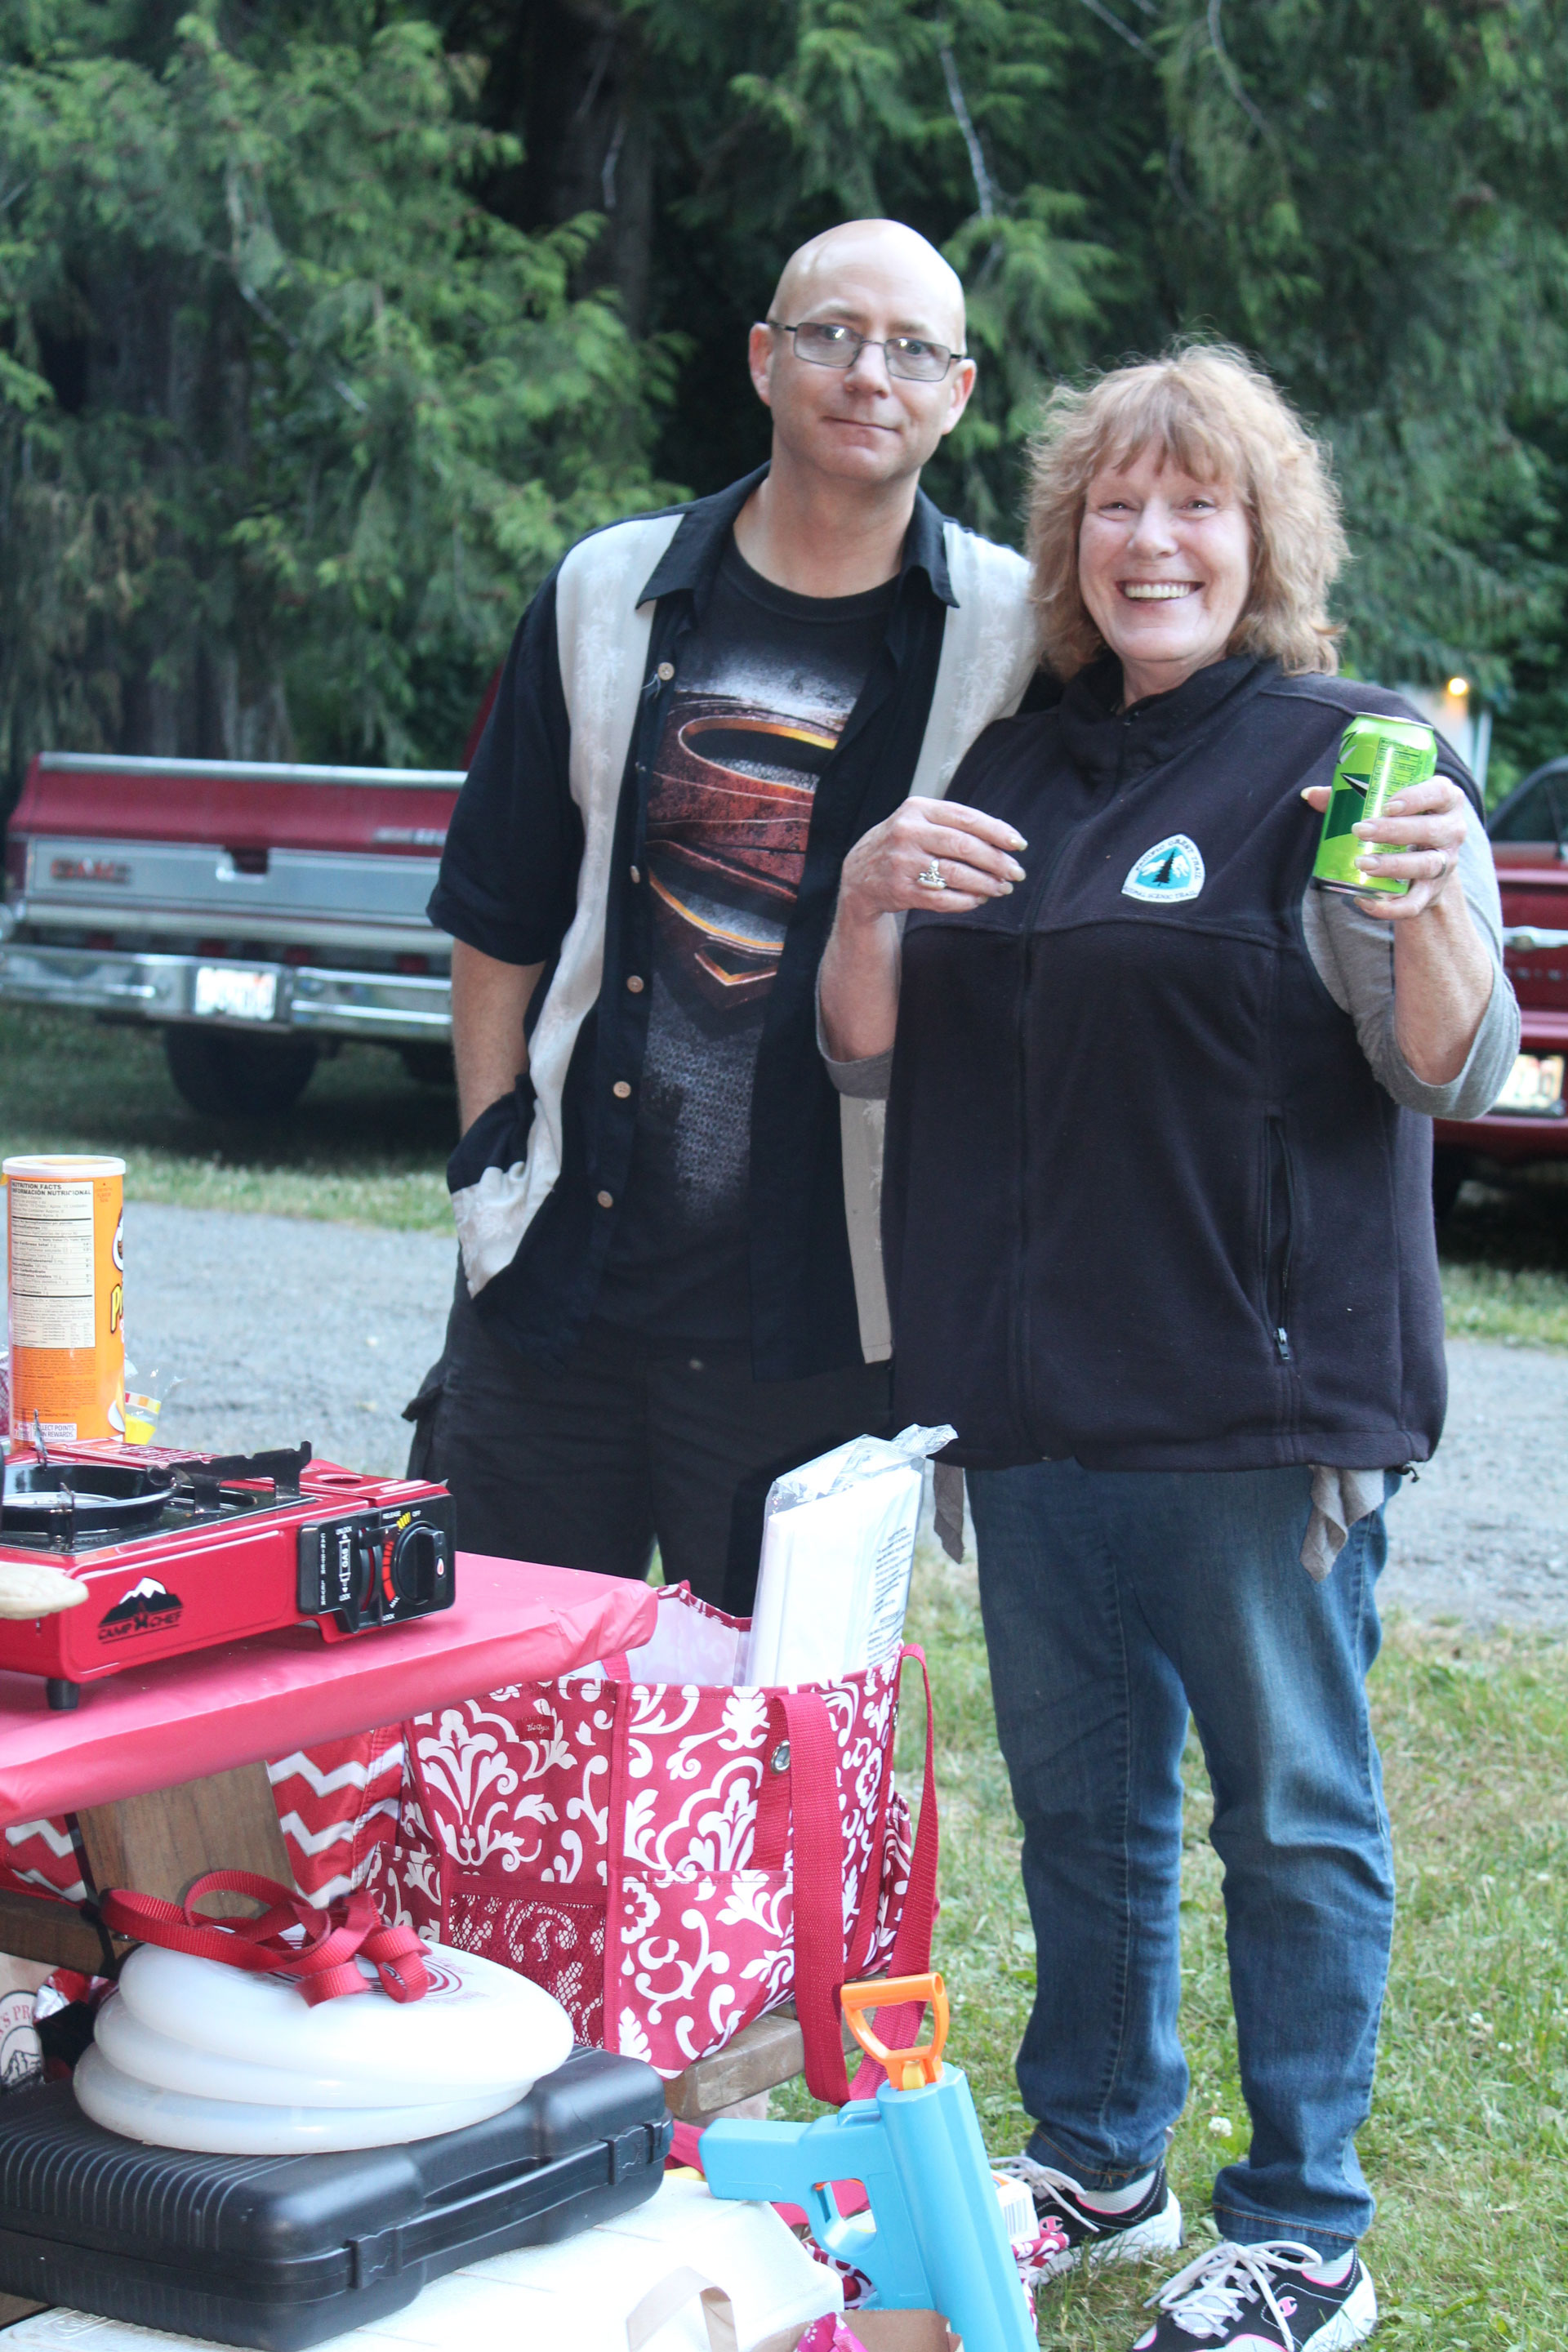 She loved her PCT vest and wore it almost everyday. Here she is with her mountaineering son-in-law Bradley Altman.